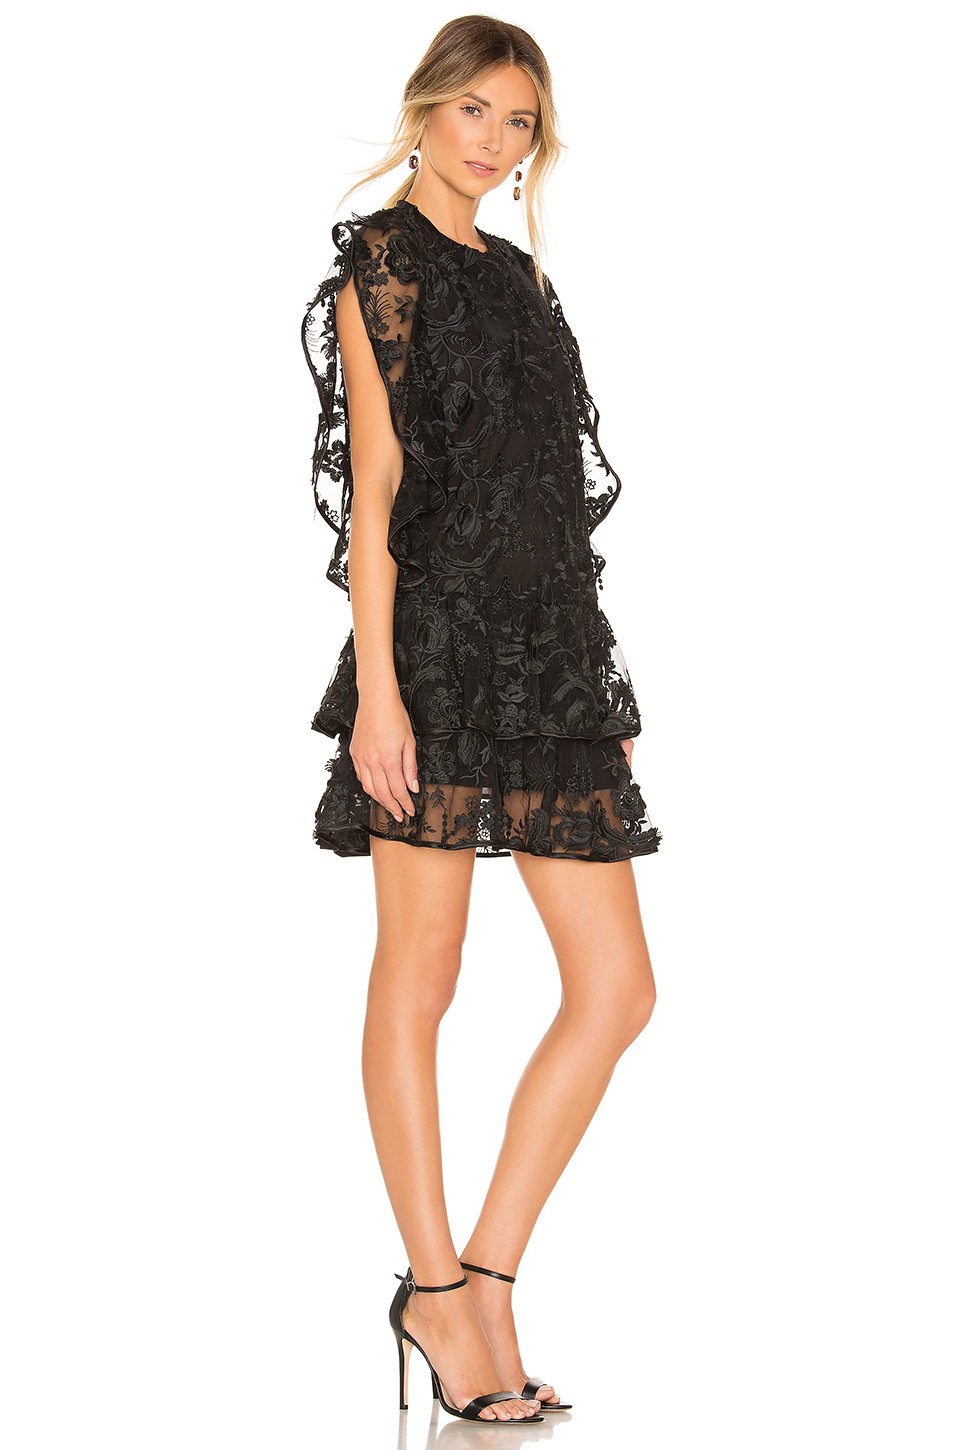 Cynthia Rowley Lace Mini Dress